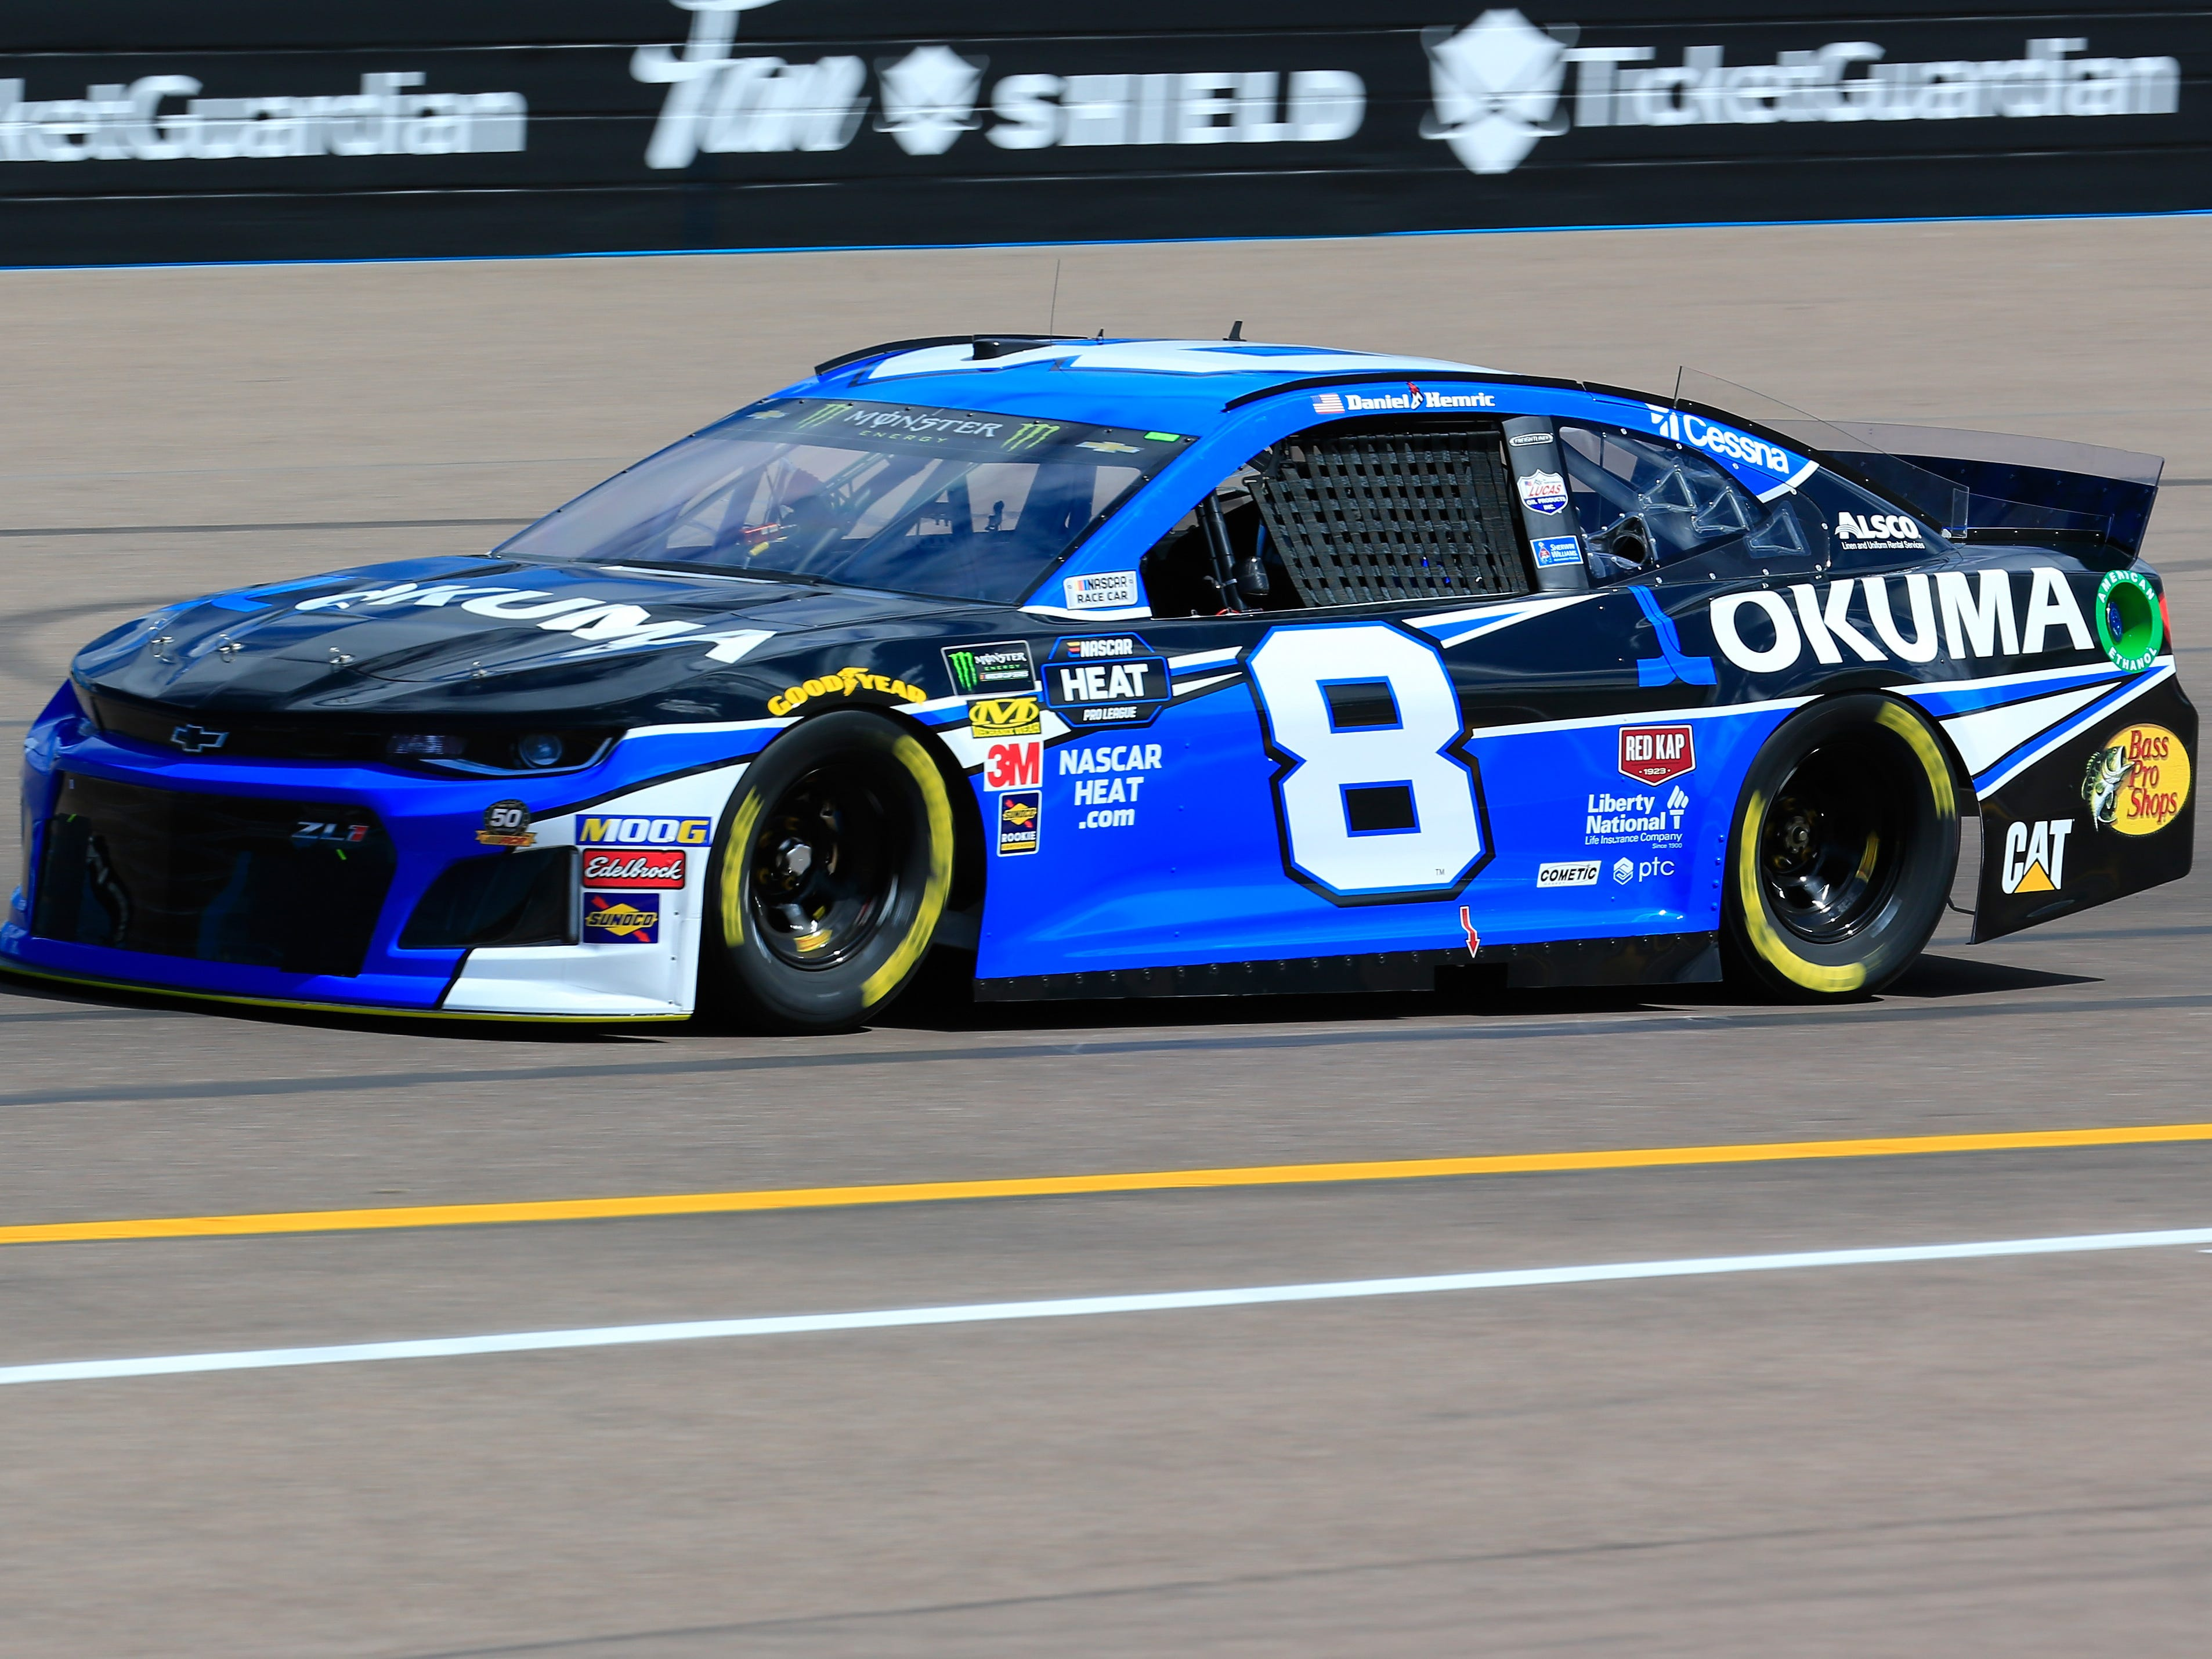 AVONDALE, AZ - MARCH 08: Daniel Hemric, driver of the #8 Okuma Chevrolet, practices for the Monster Energy NASCAR Cup Series TicketGuardian 500 at ISM Raceway on March 8, 2019 in Avondale, Arizona.